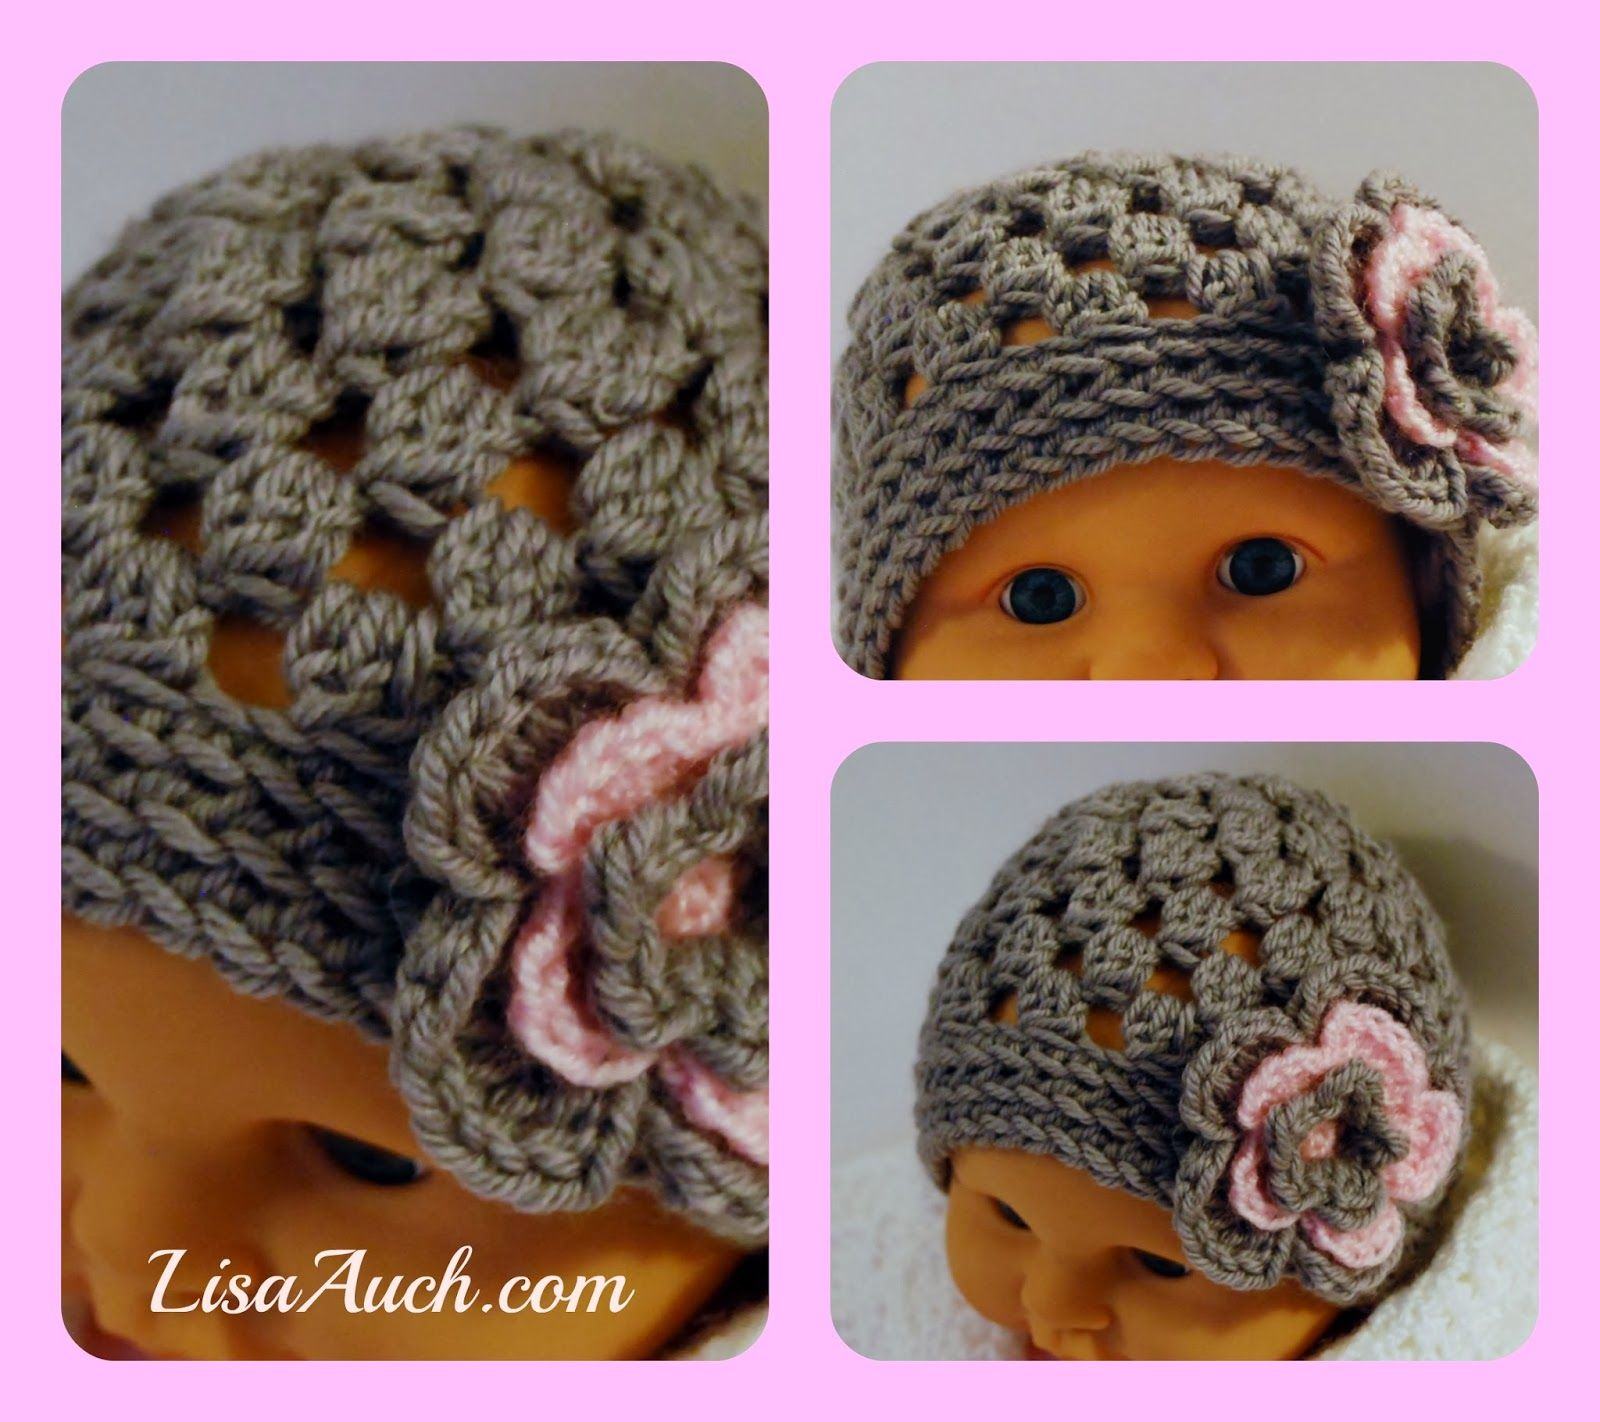 Free crochet pattern baby hat crochet lisaauch baby pinterest crochet free crochet pattern baby hat dt1010fo